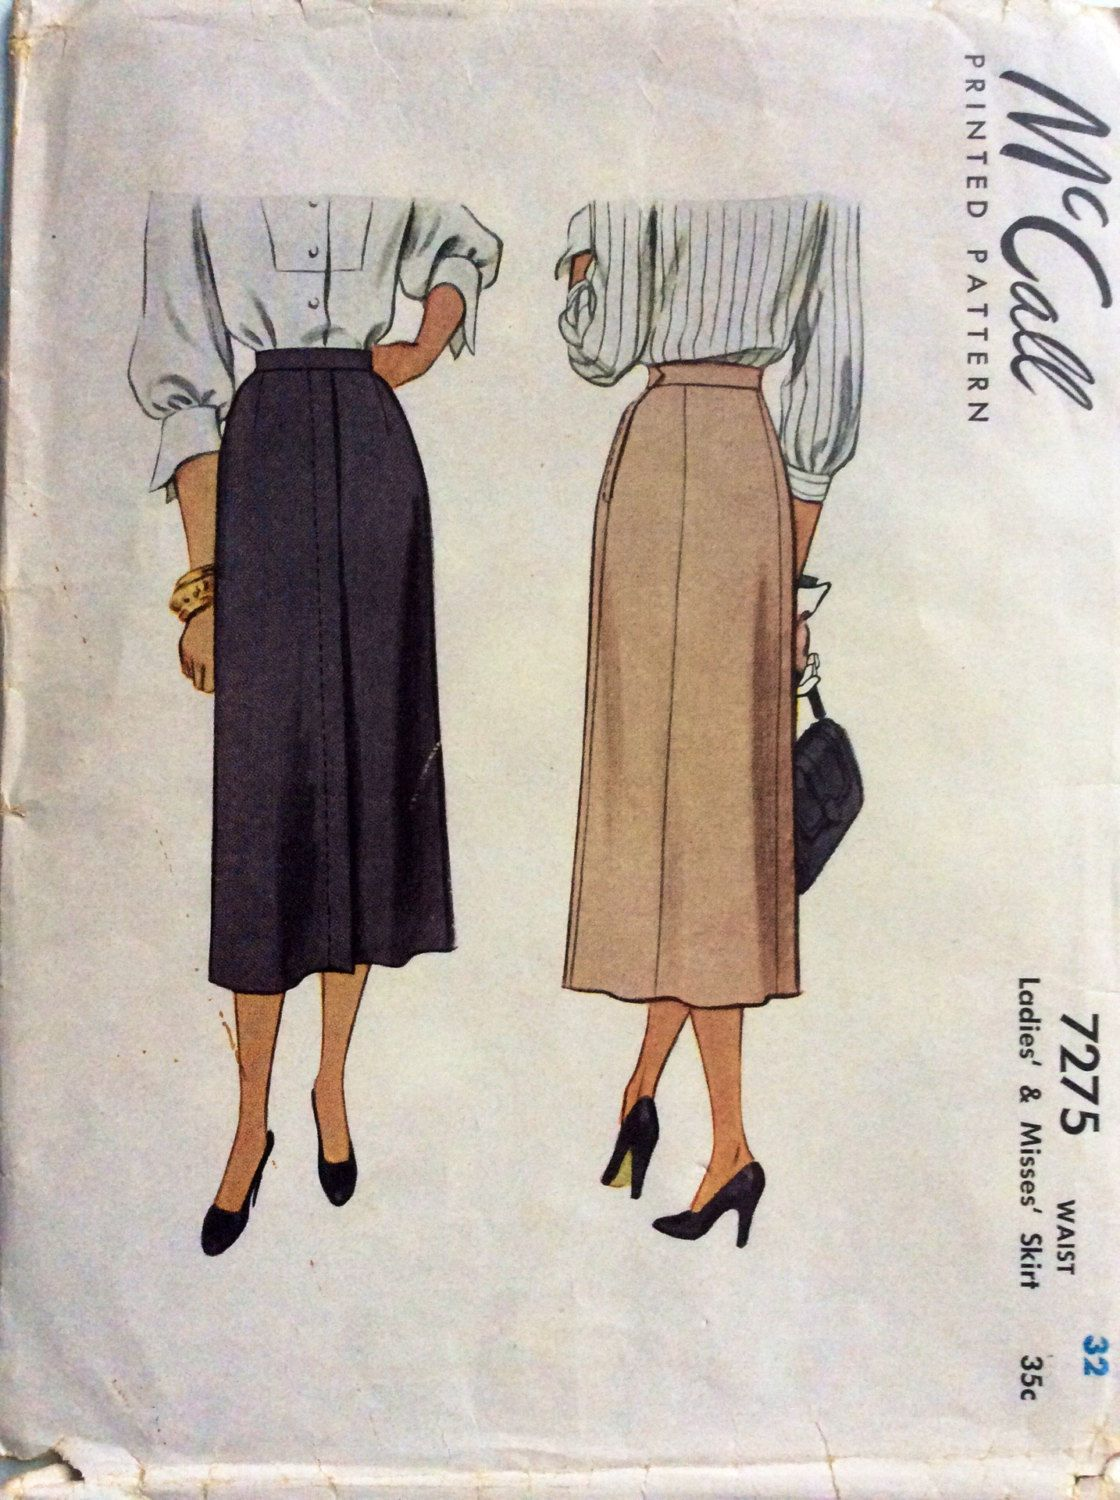 1940s slim fit straight skirt mccall 7275 uncut vintage sewing slim fit straight skirt mccall 7275 uncut vintage sewing pattern waist 32 hip 41 retro mid century classic style preppy elegance by on etsy jeuxipadfo Choice Image